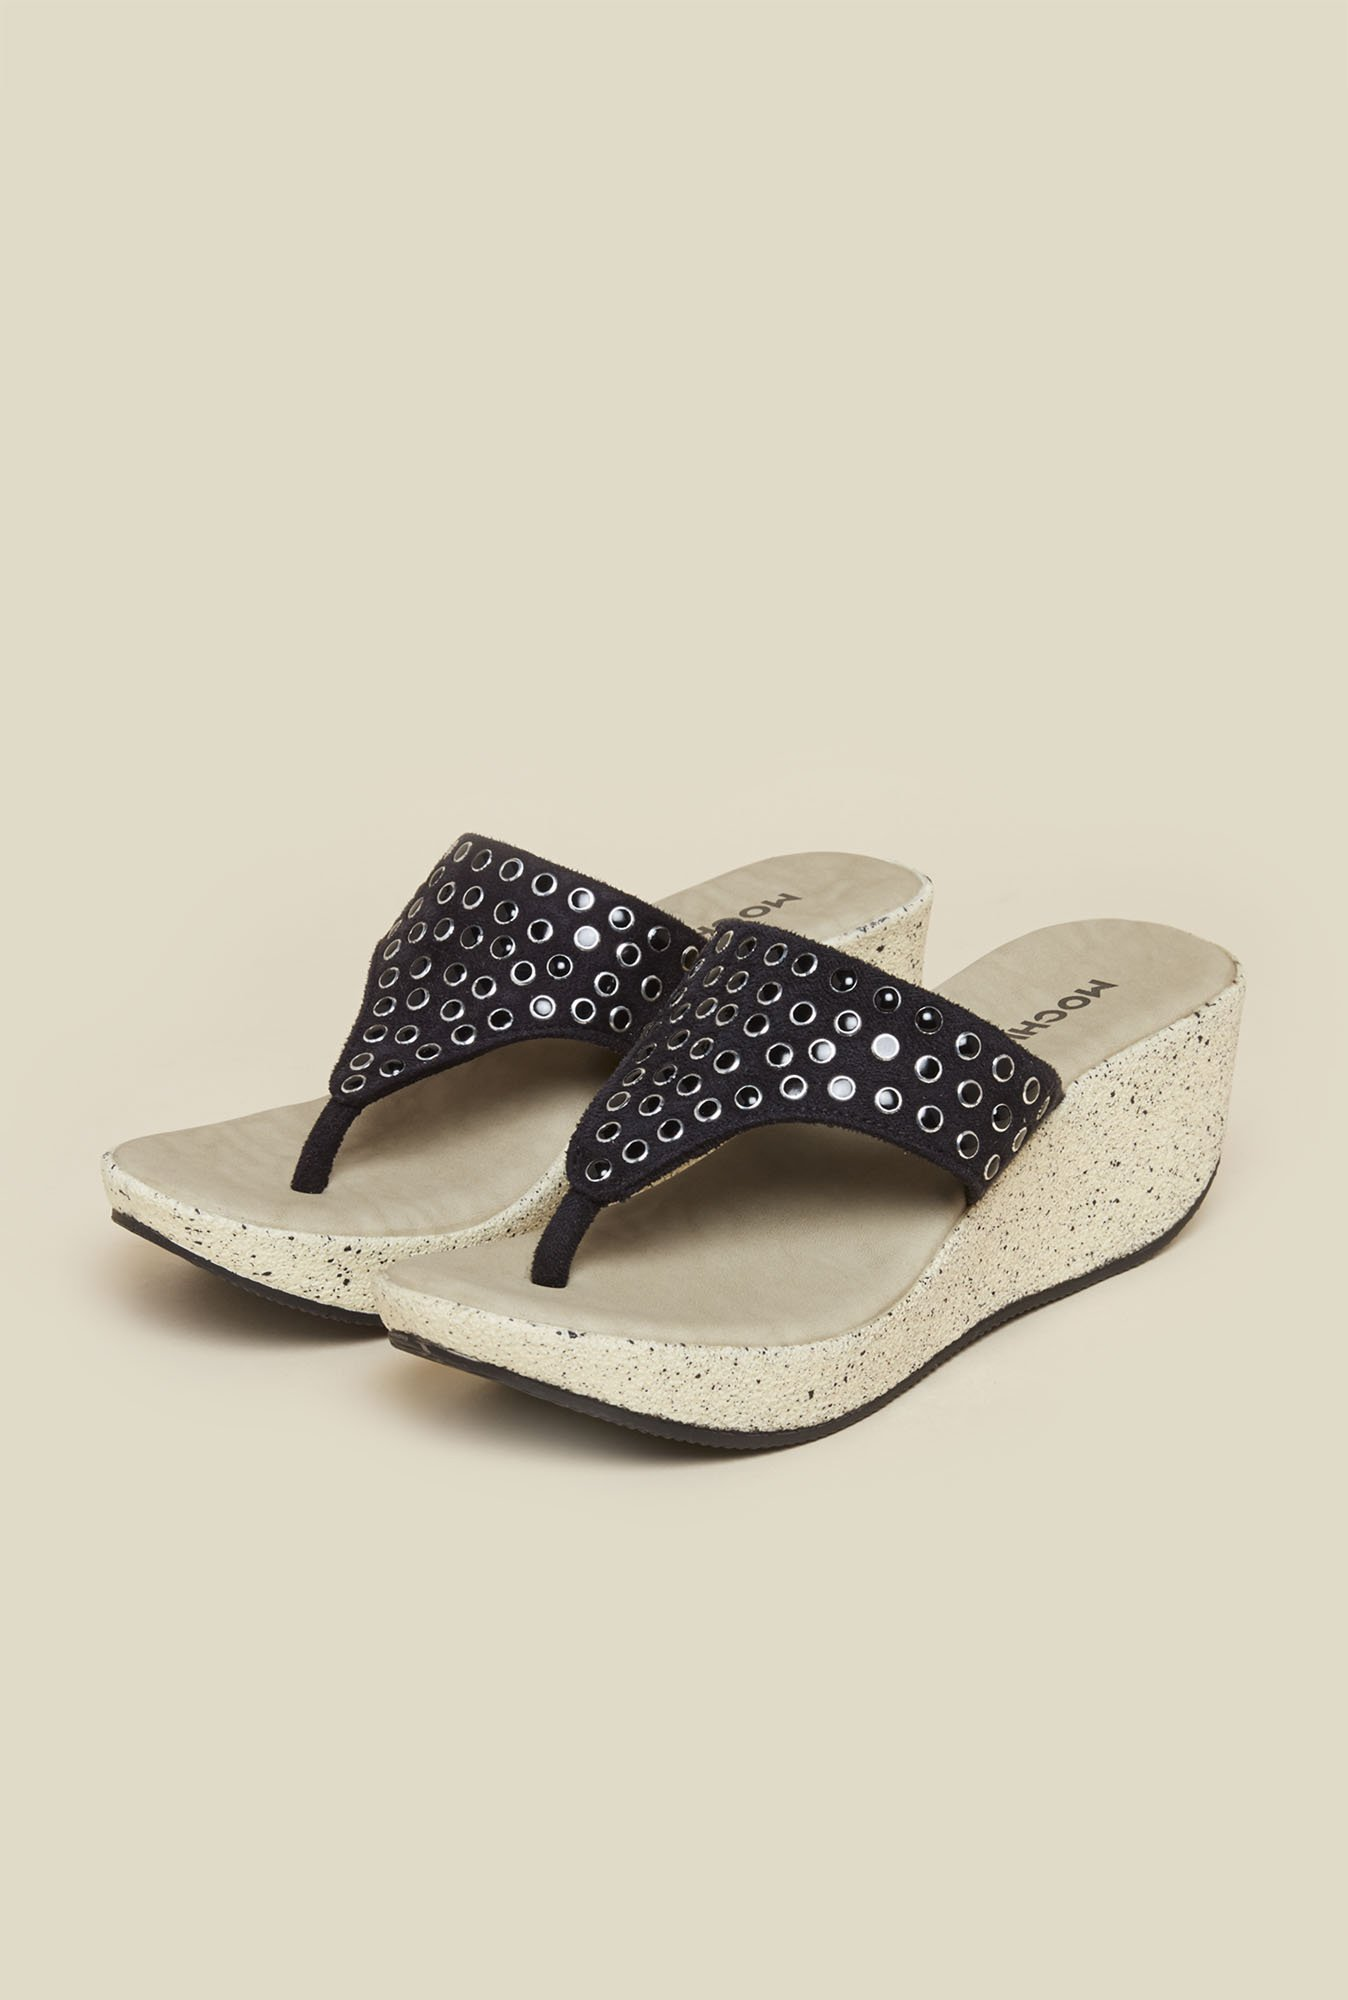 Mochi Black Stud Wedges